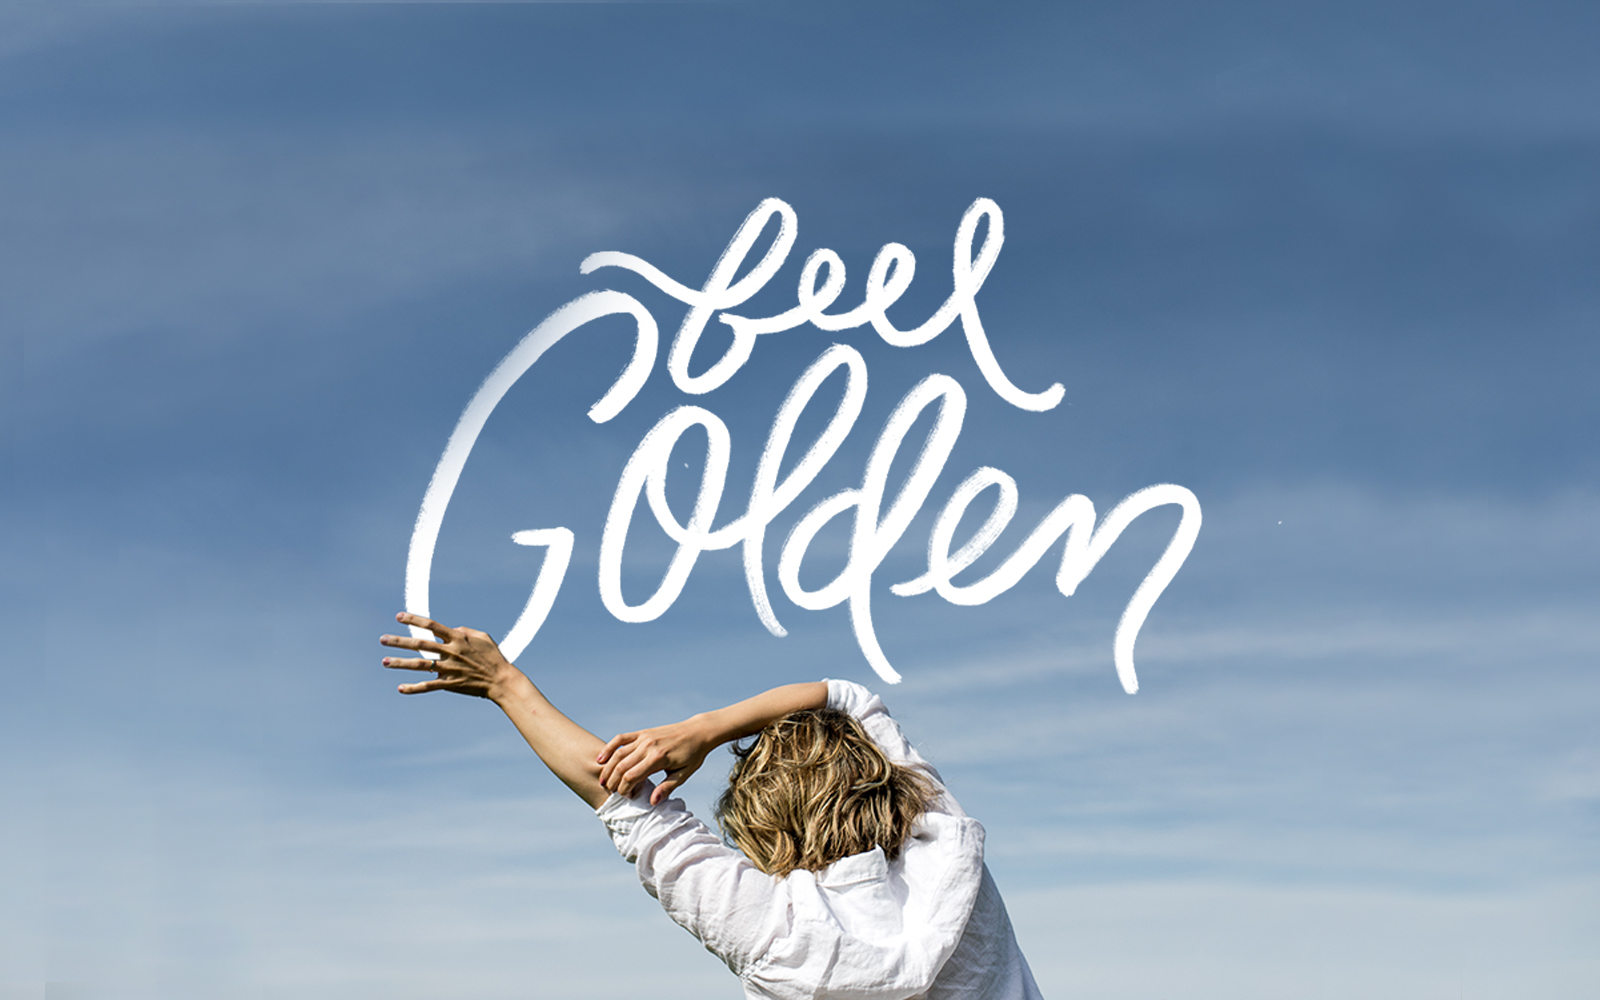 The longest Day of the year. We will feel golden today. The Fresh Exchange